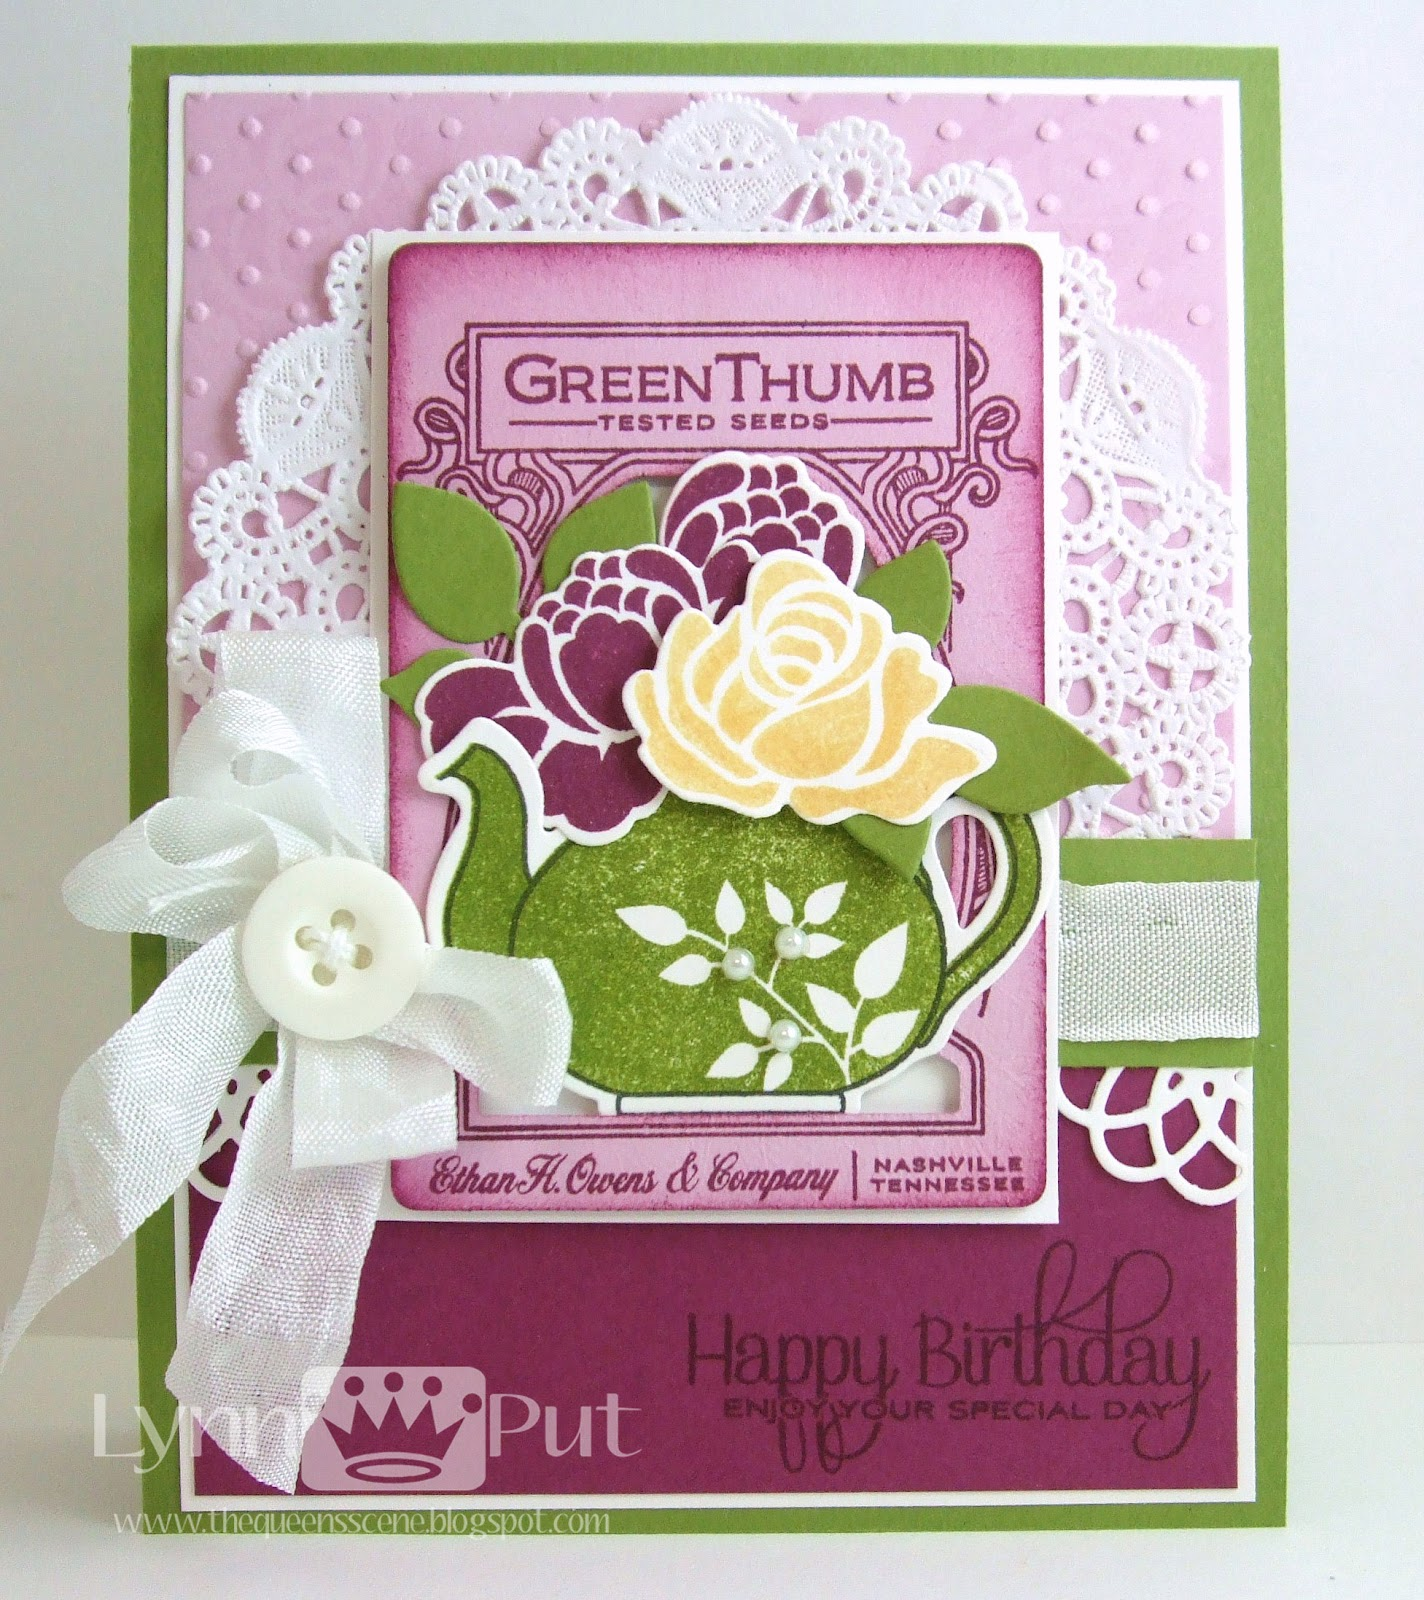 Hello There! Today I Have A Birthday Card For My Special Friend Kathy Whou0027s  Birthday Is Tomorrow. I Hope She Has A Wonderful Day.